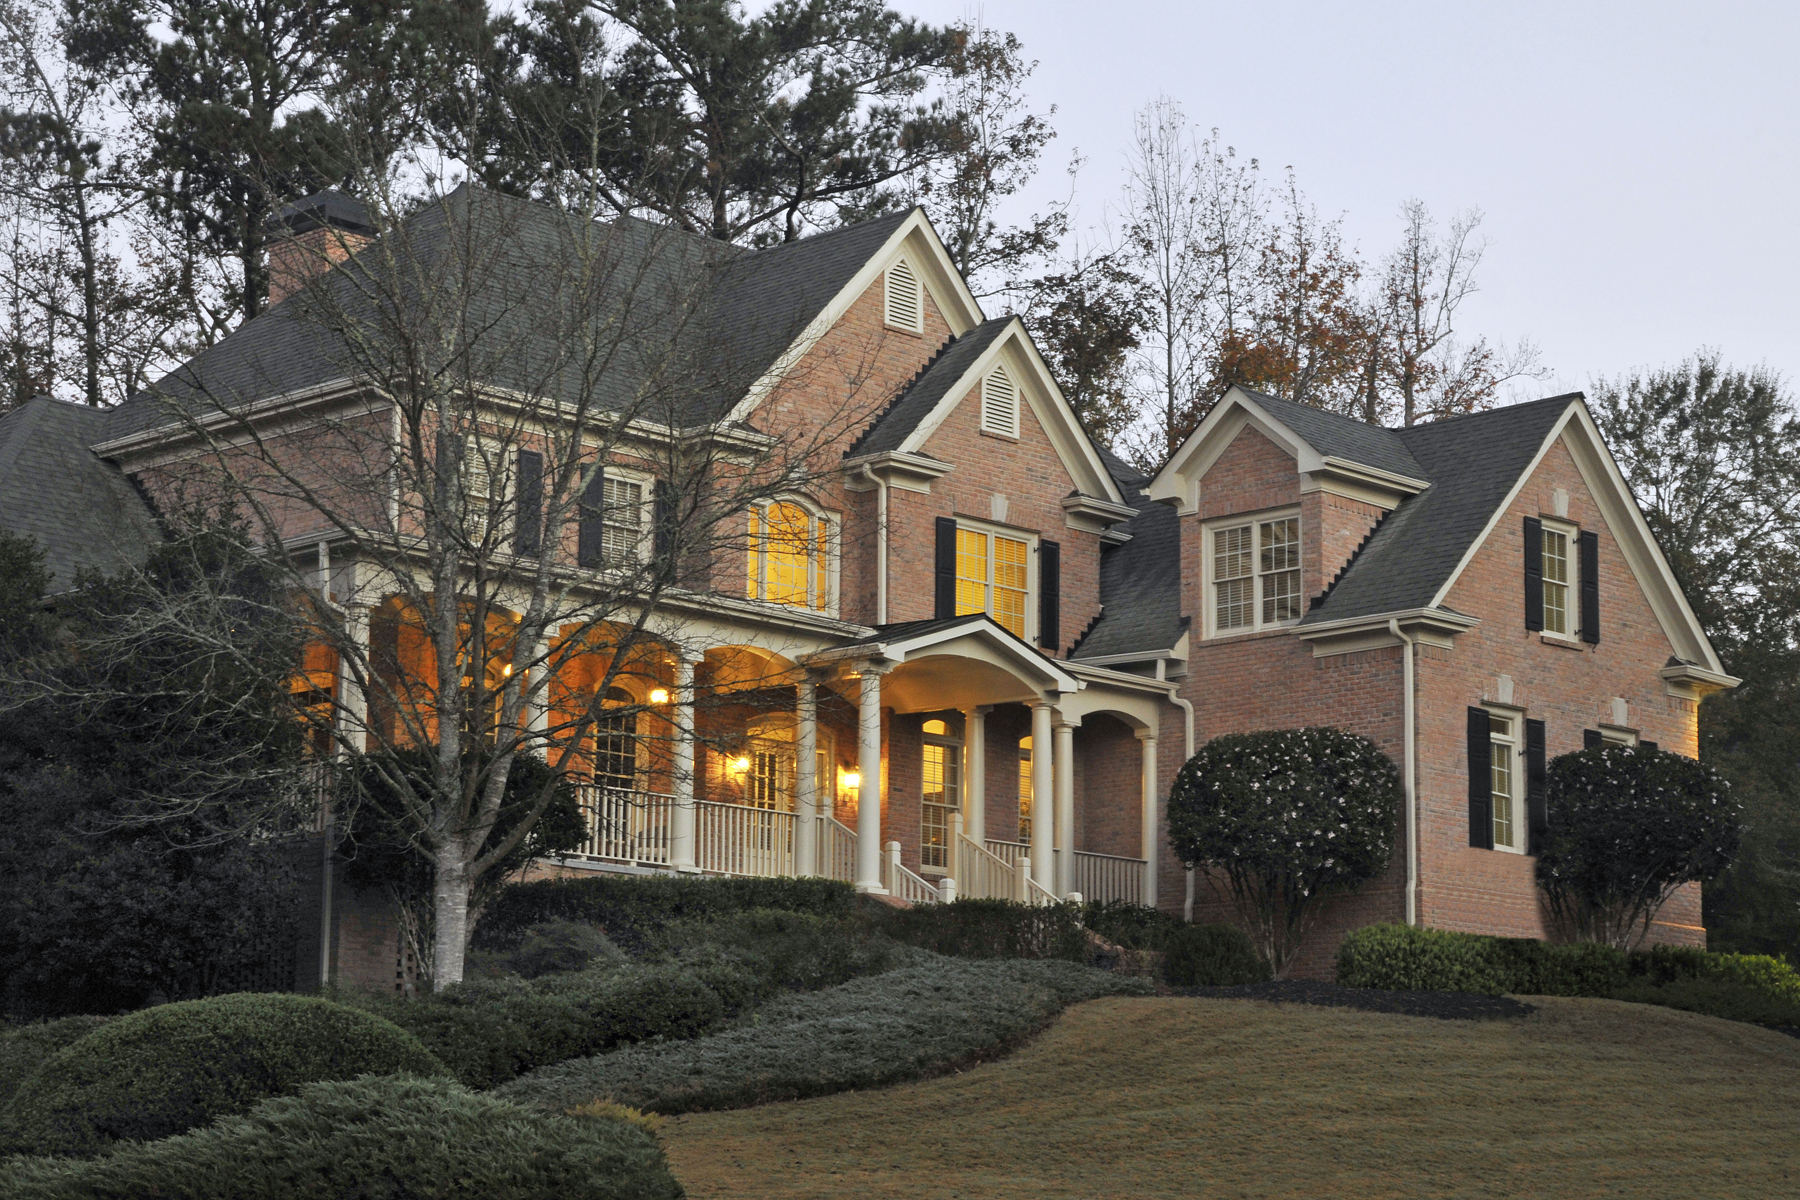 Stately Brick Estate with Wrap Around Front Porch 200 Ruffed Grouse Way Johns Creek, Georgia 30097 United States